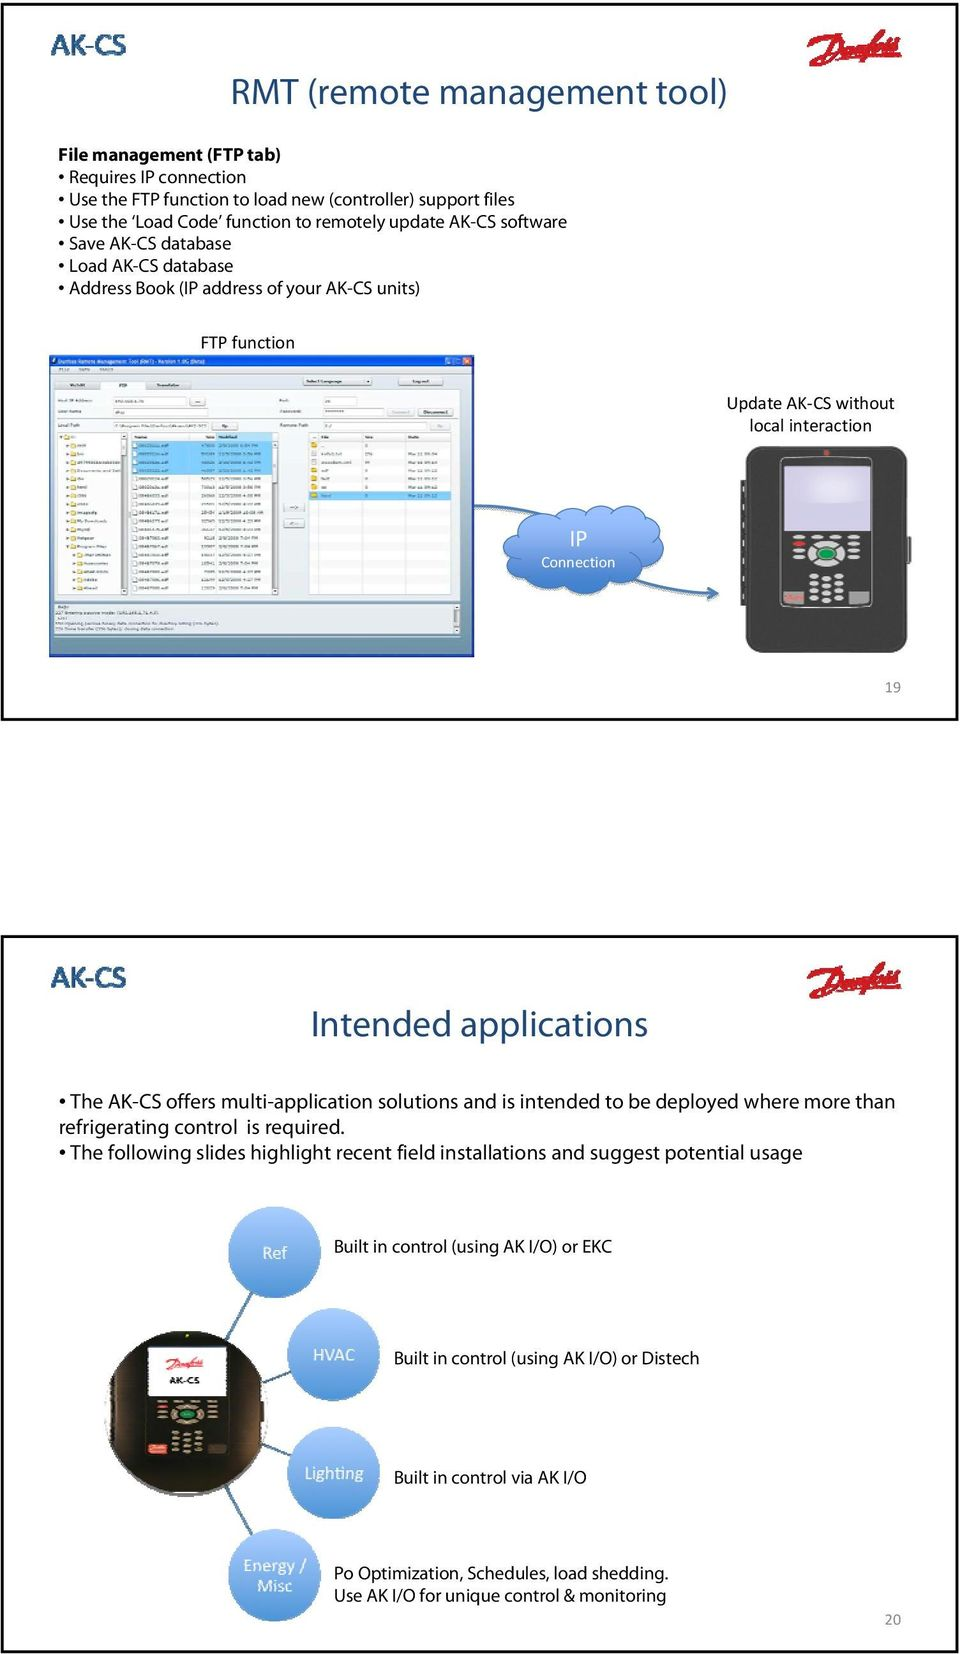 offers multi-application solutions and is intended to be deployed where more than refrigerating control is required.